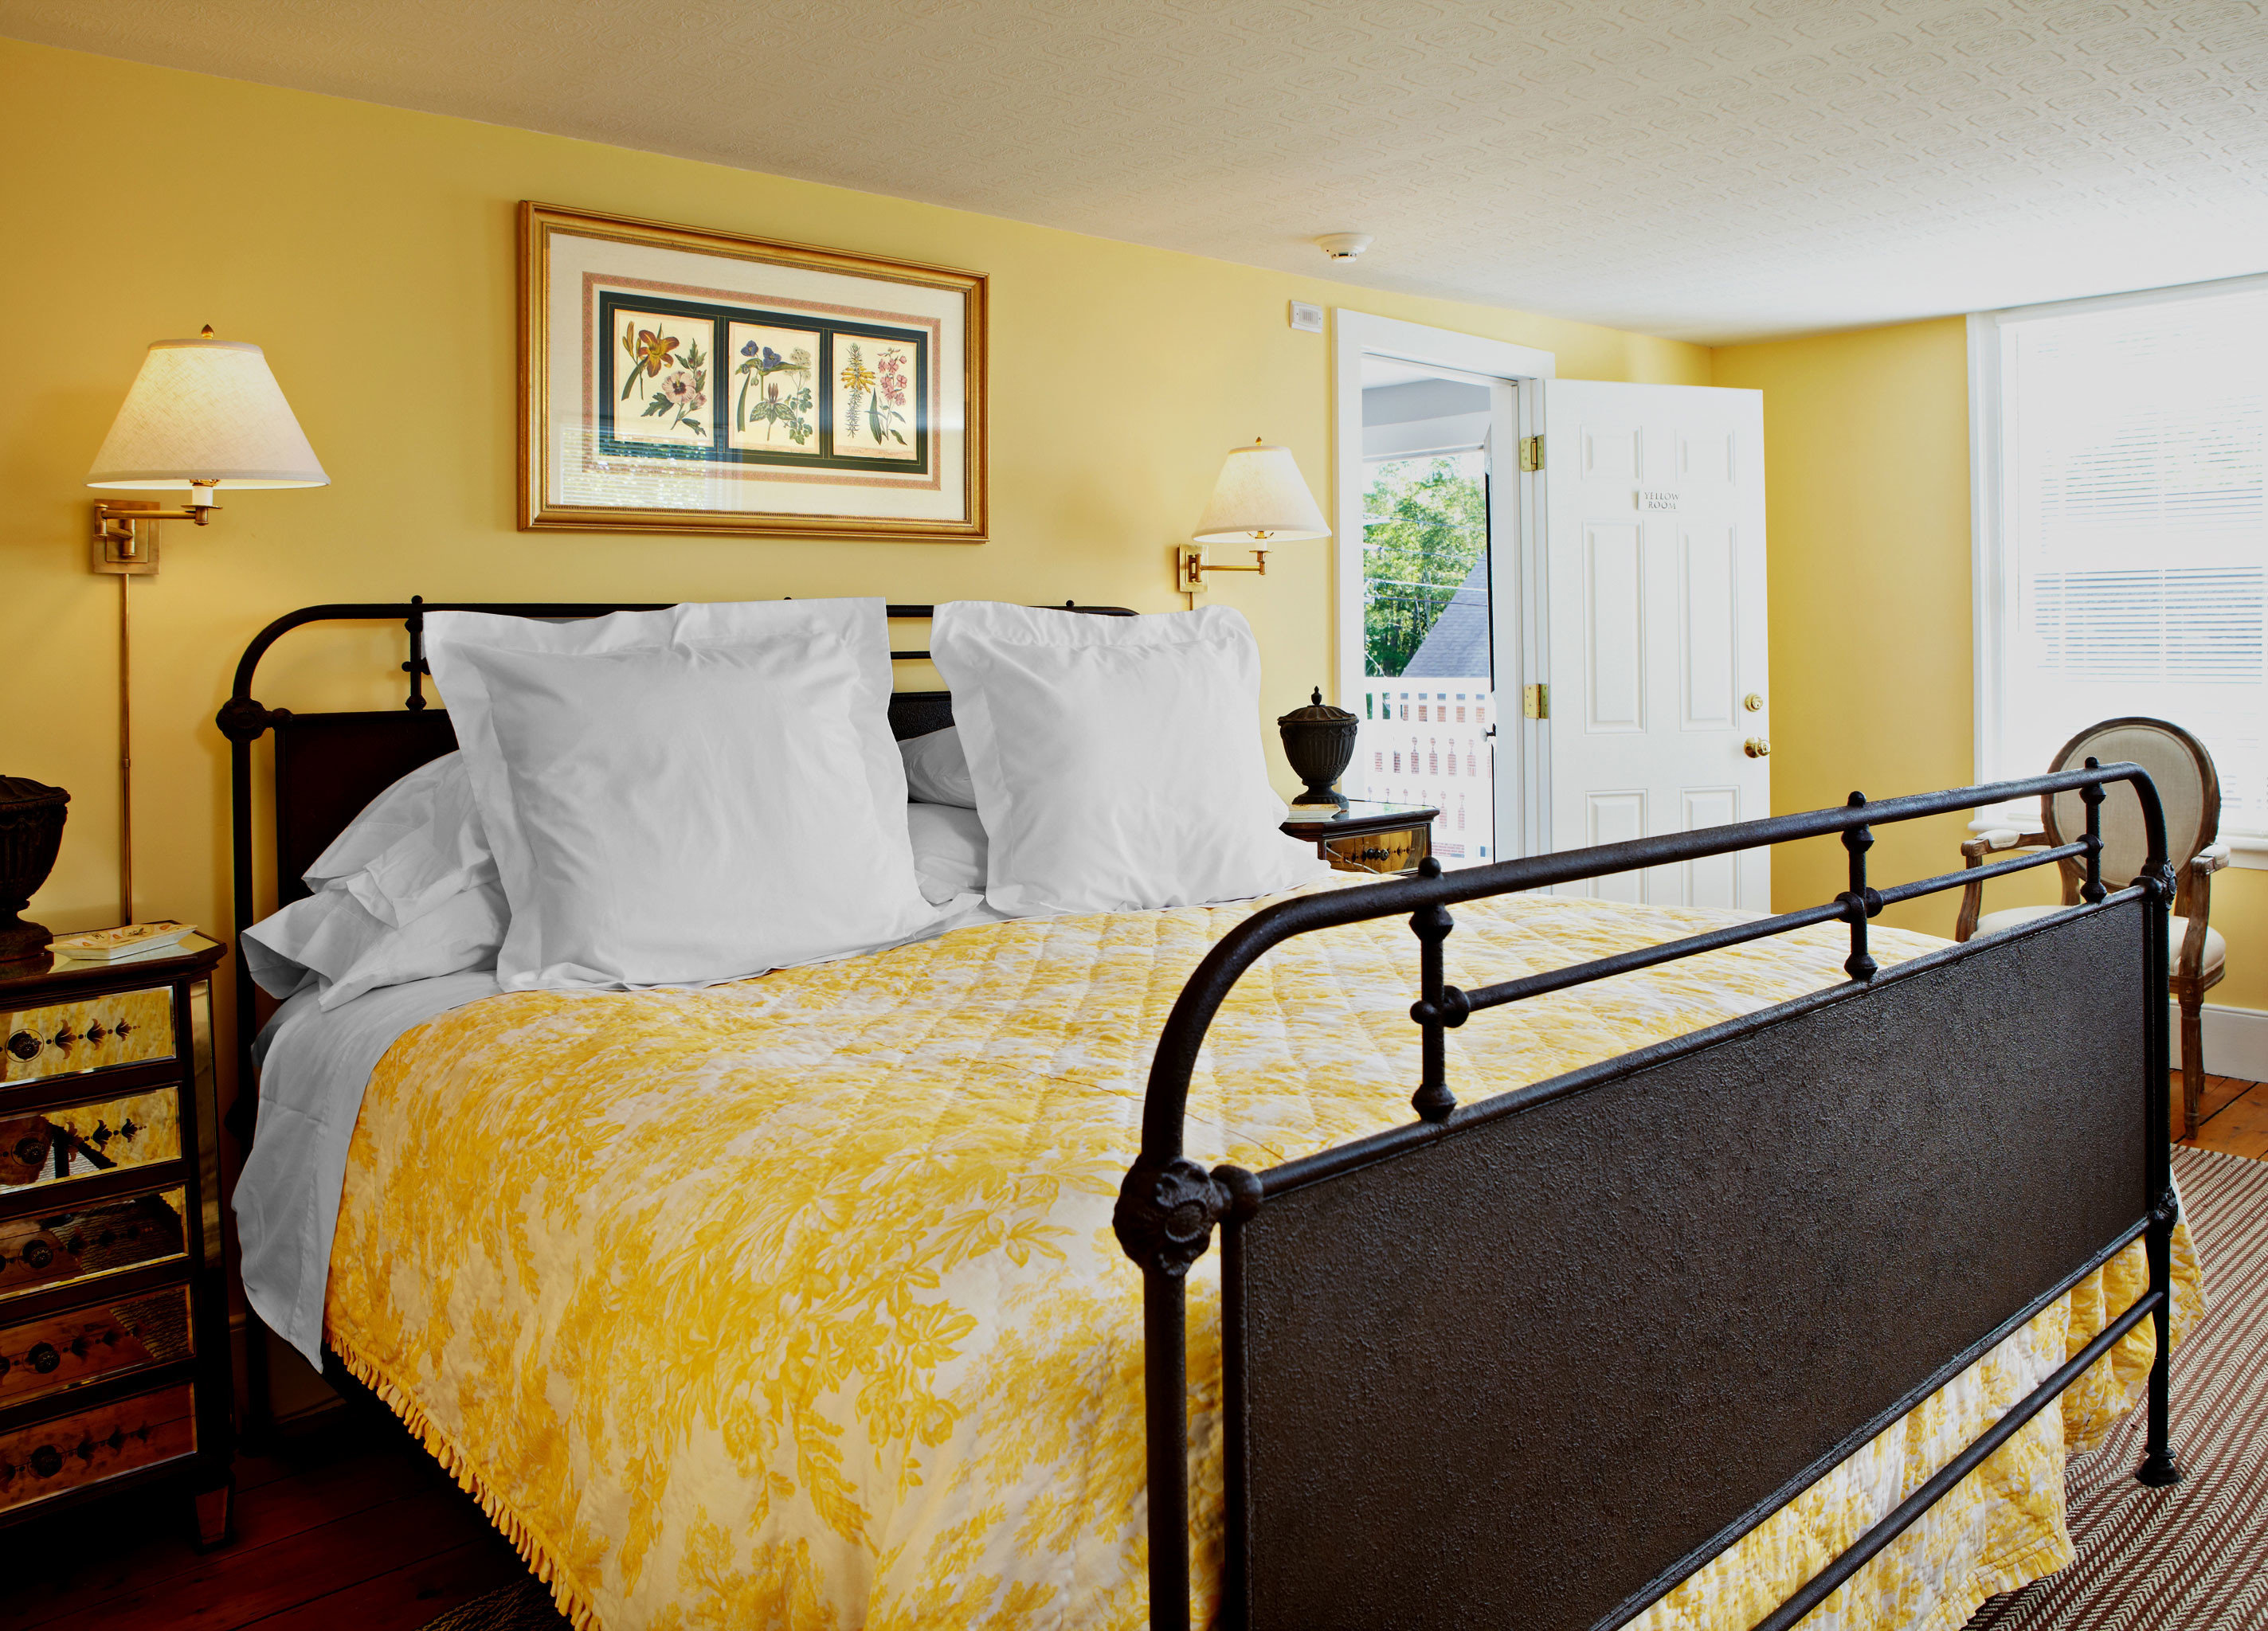 Bedroom Country Historic Inn property yellow Suite cottage home lamp